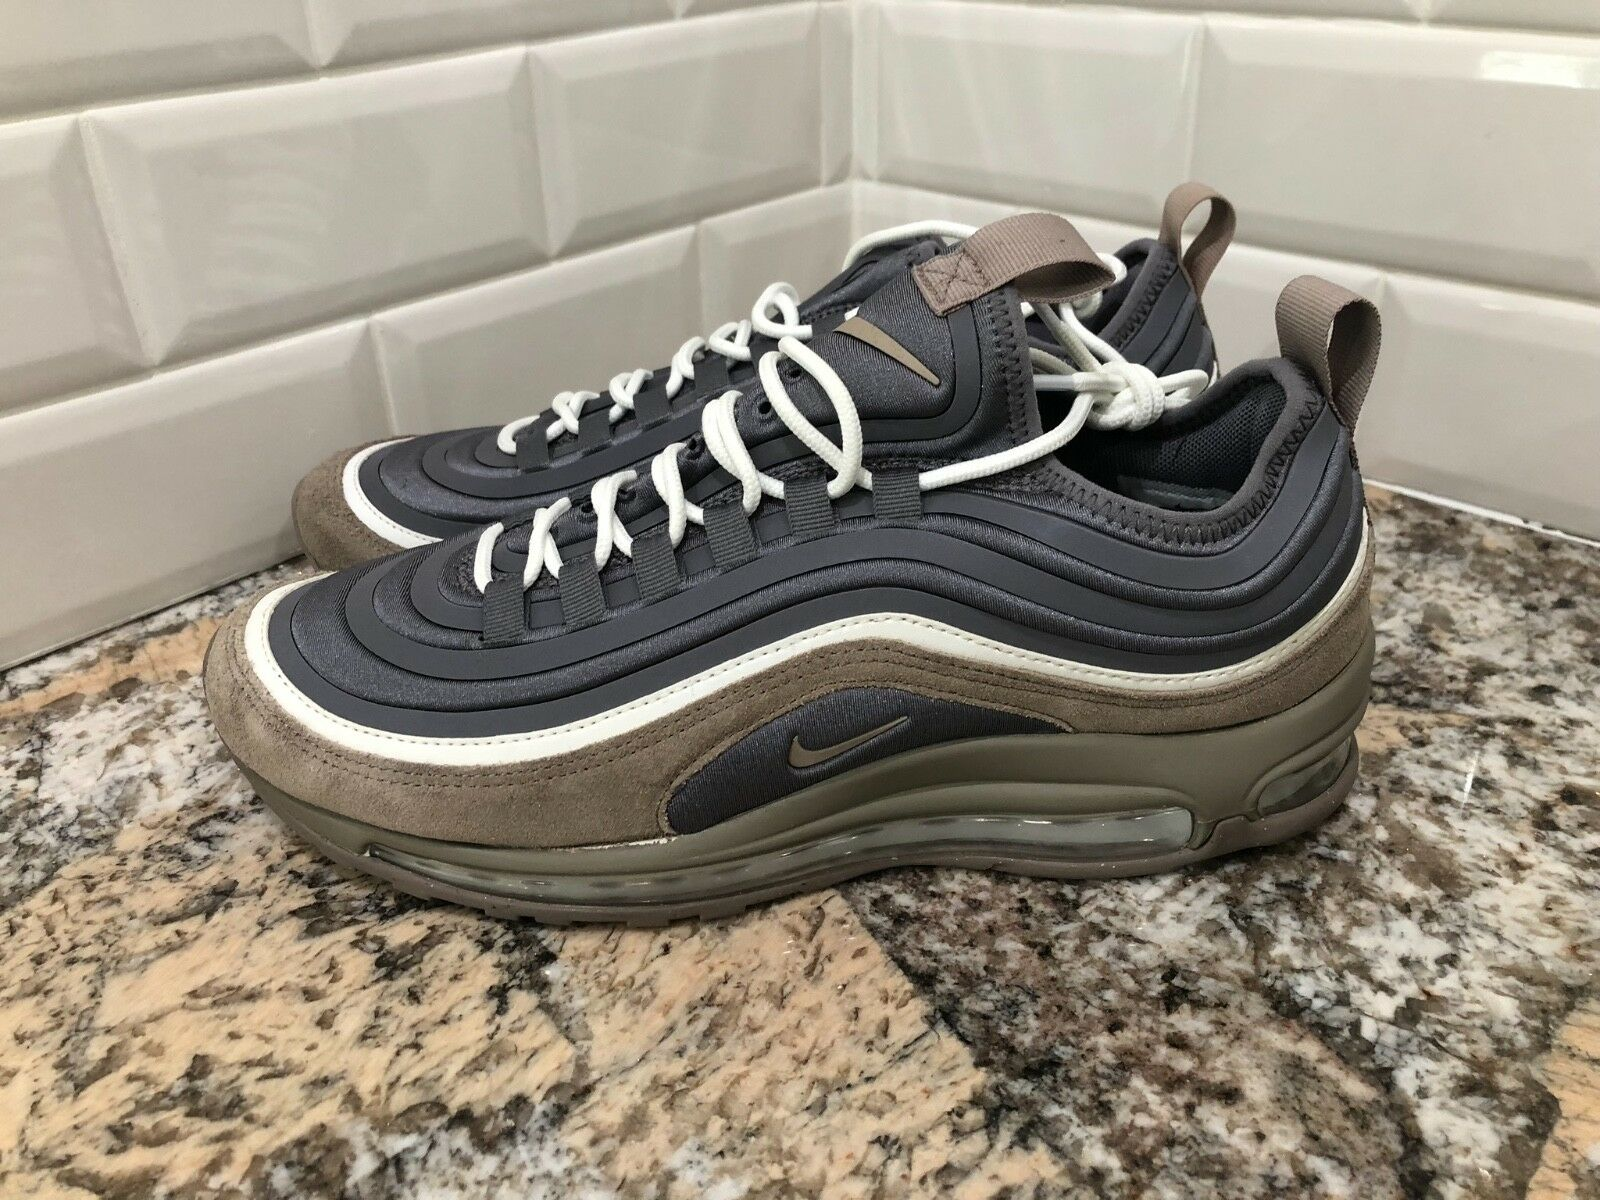 Unreleased Nike Air Max 97 Ultra SE Sample Price reduction Brand discount